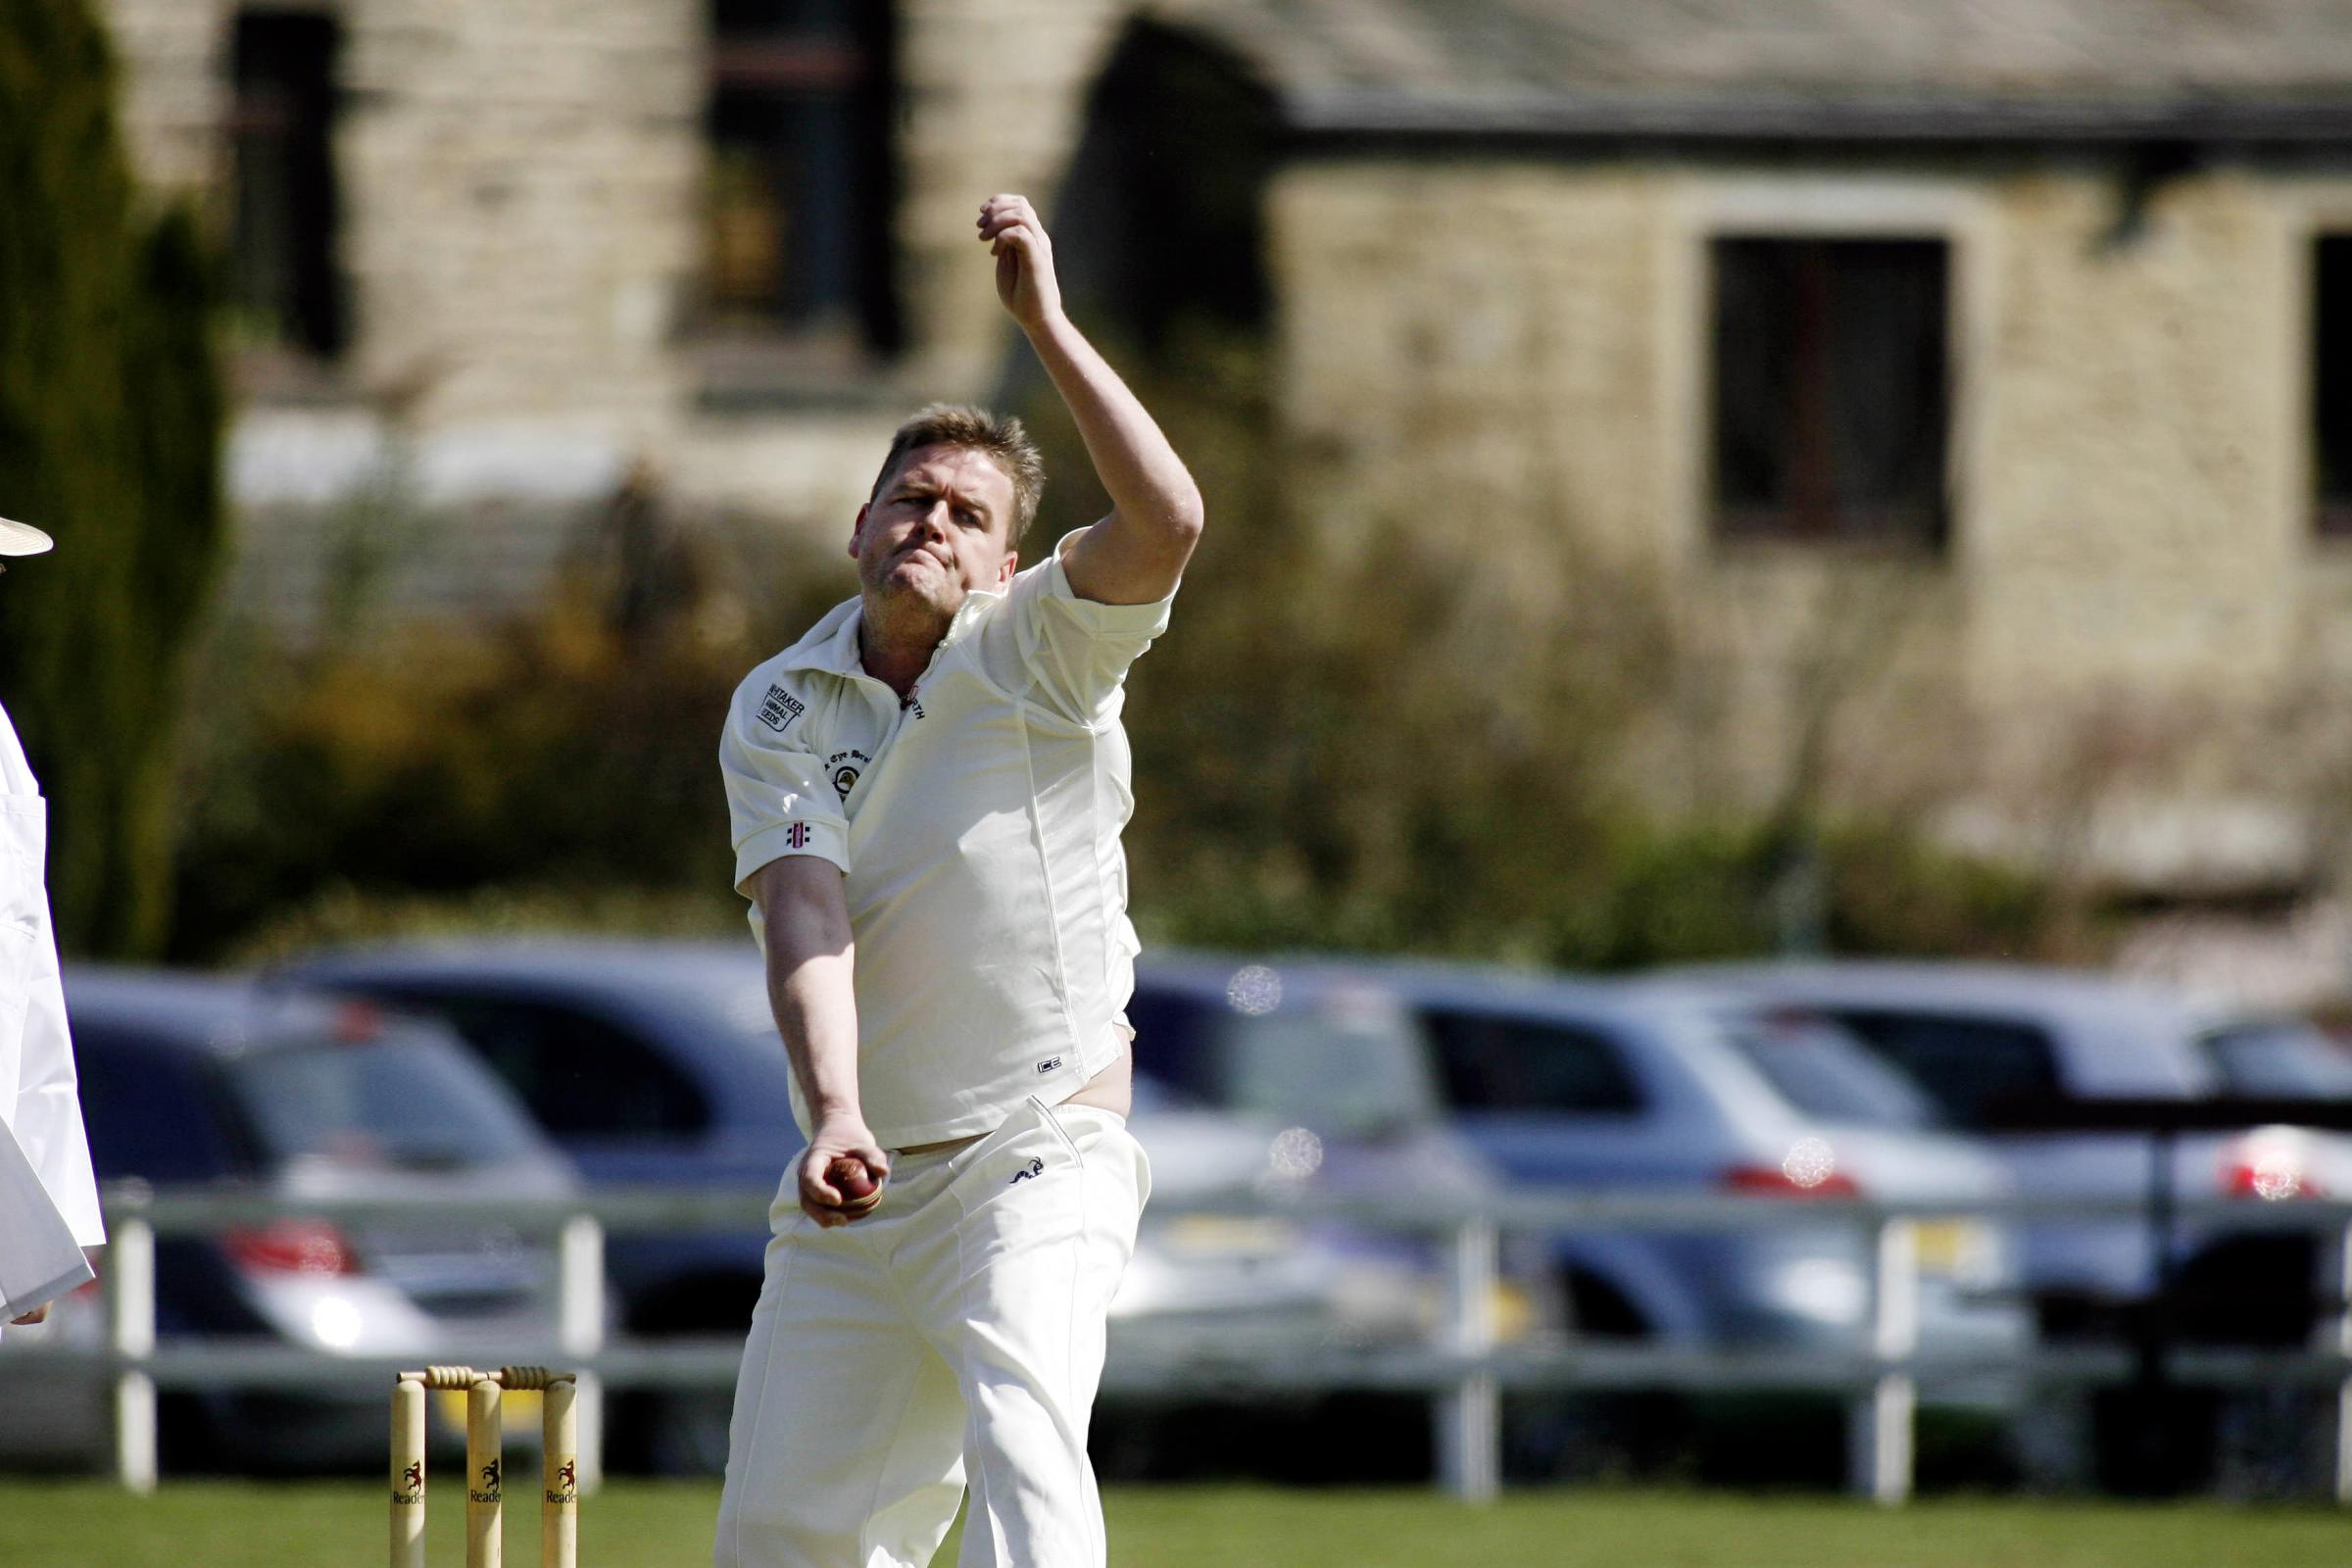 Haworth's Damian Rowell won the Craven League's Division One bowling award